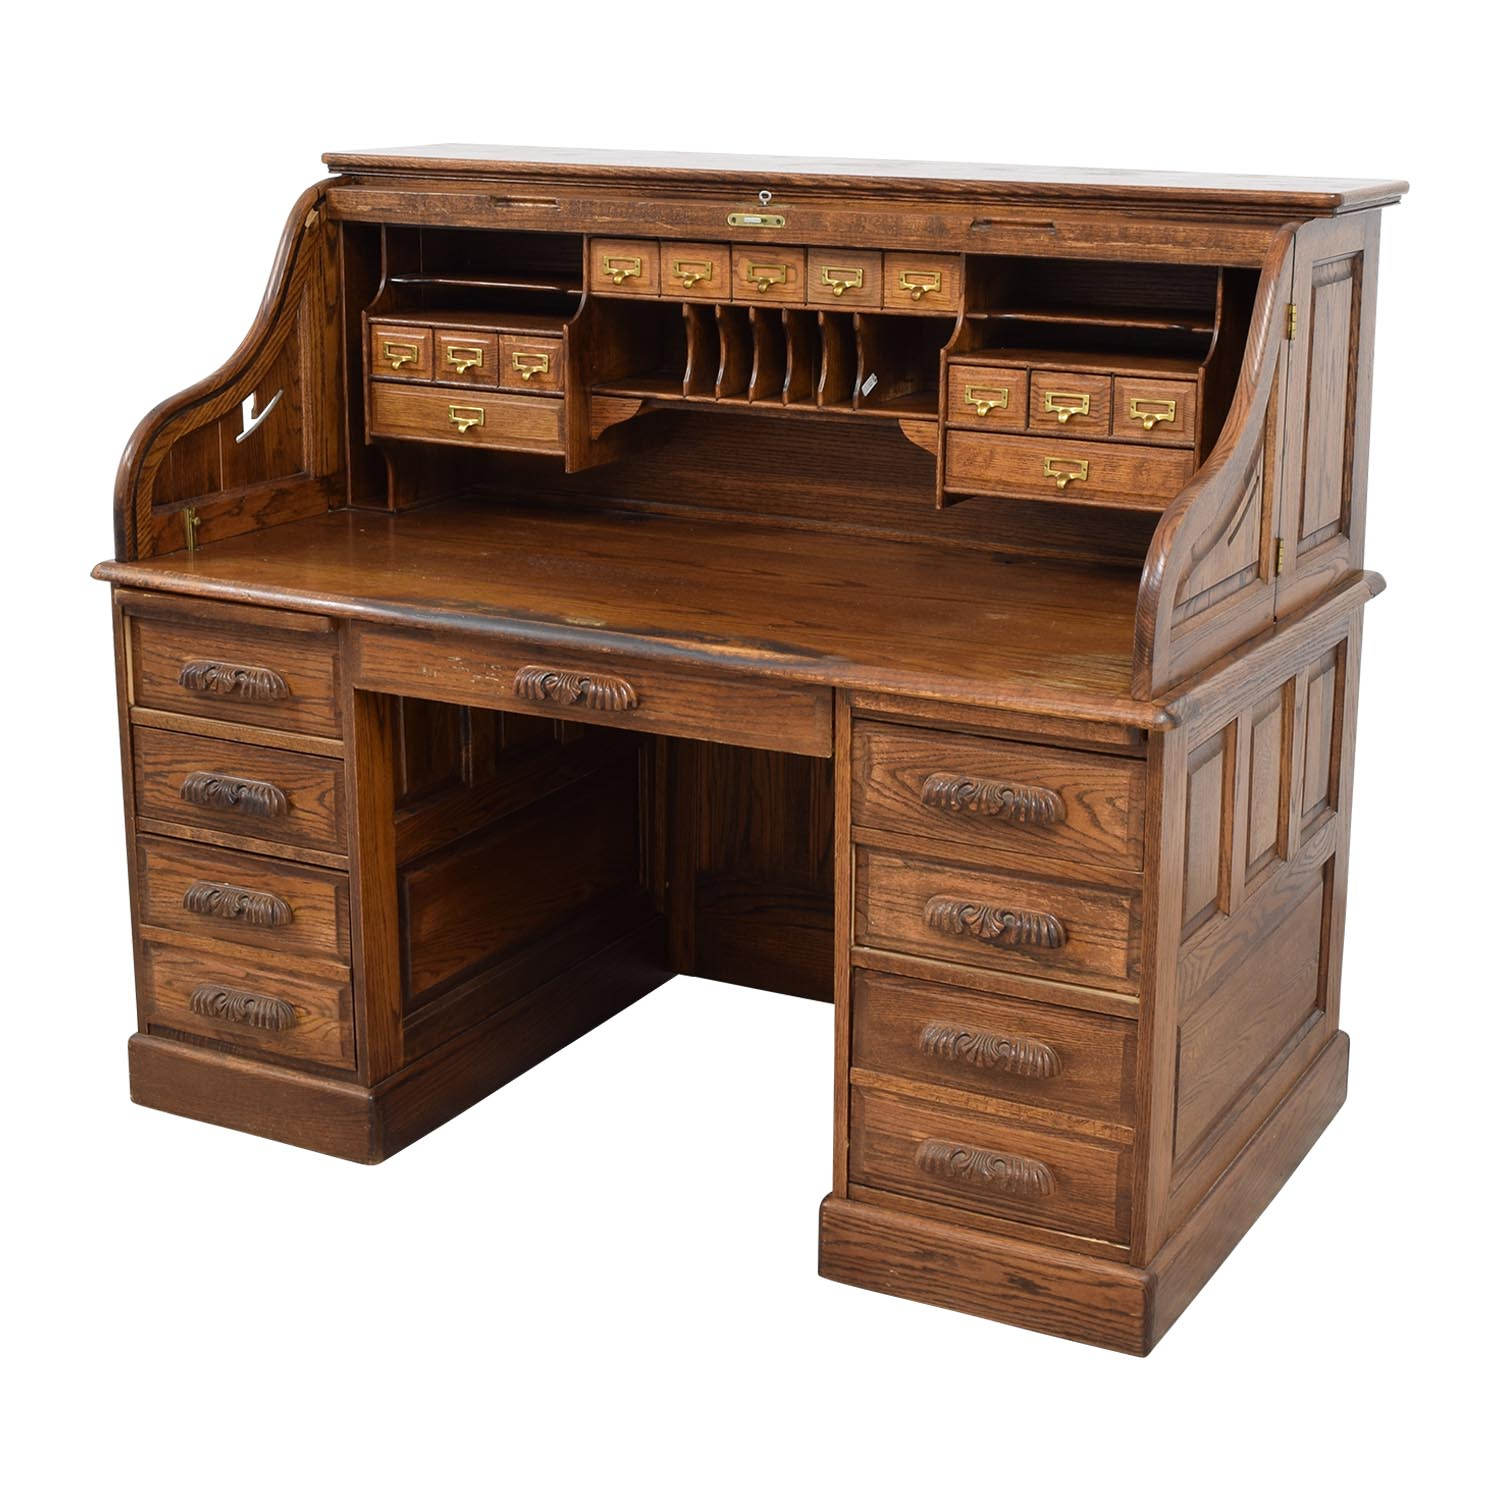 Antique Oak Roll-Top Desk sale